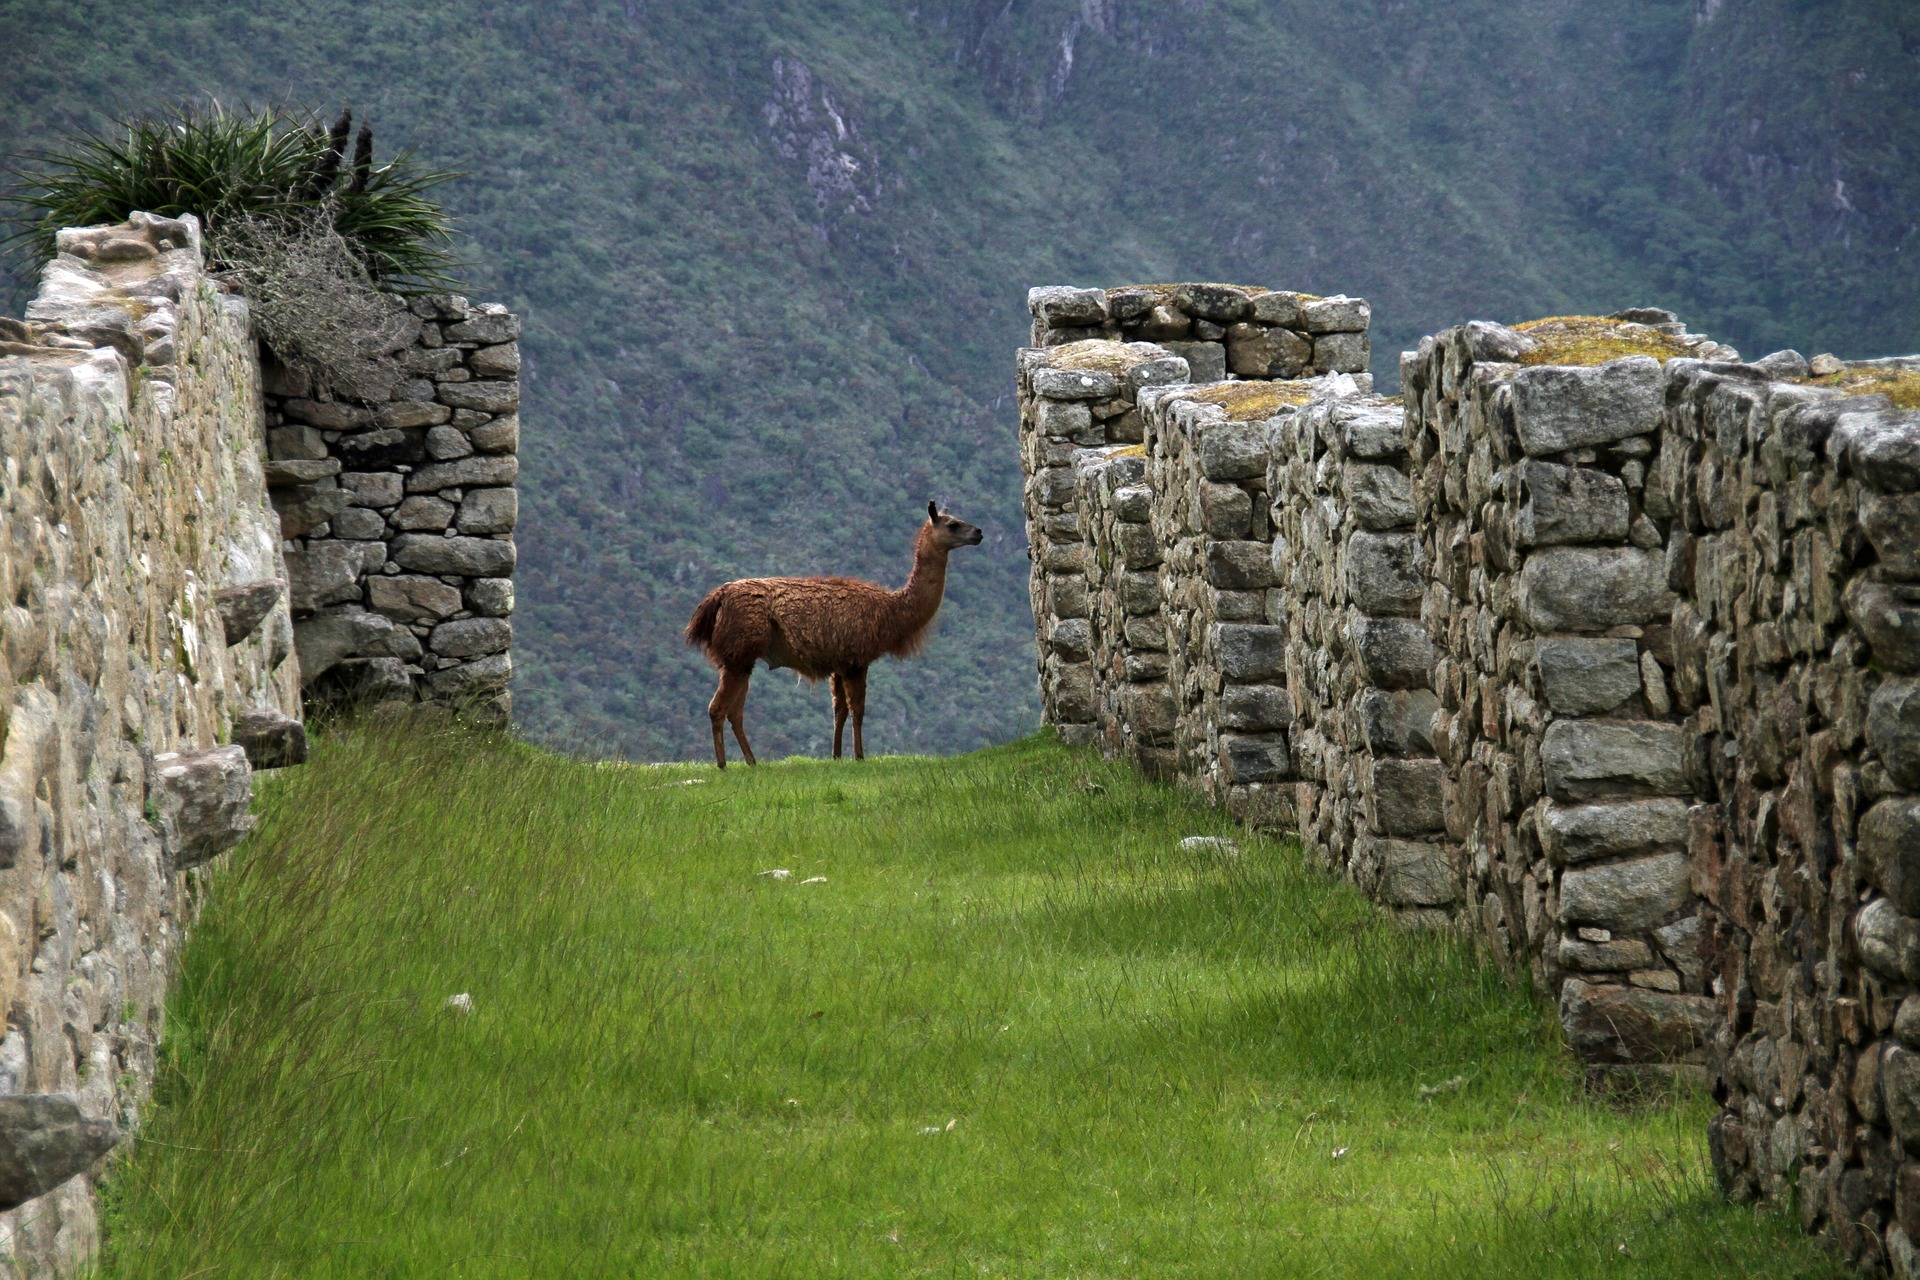 Andes llamas, alpacas and horses, and Mountain Lodges of Peru http://infromtheoutpost.com